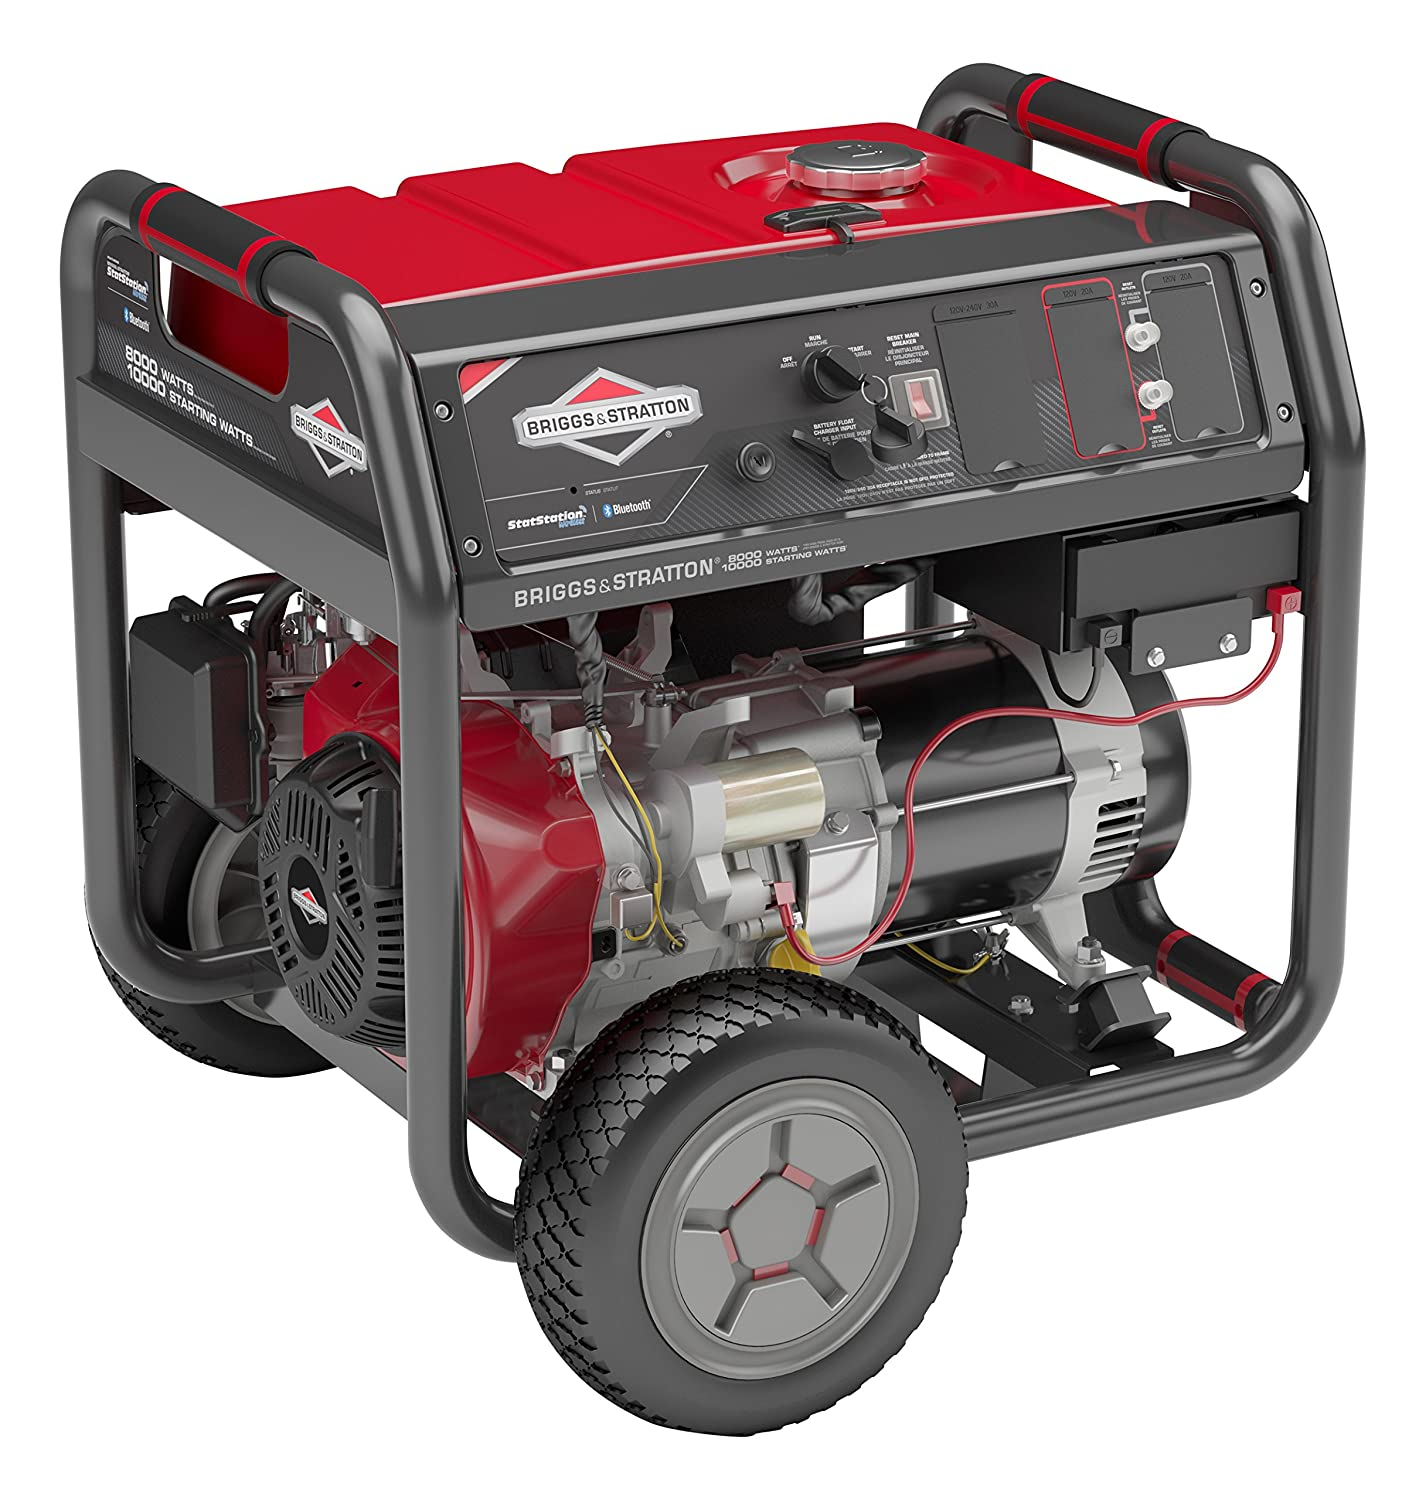 Briggs Stratton 30679 8000 Running Watts 10000 Tone Burst Generator Be Simple Is Try This Circuit Like Sure Because Starting Gas Powered Portable With Bluetooth Connectivity Garden Outdoor